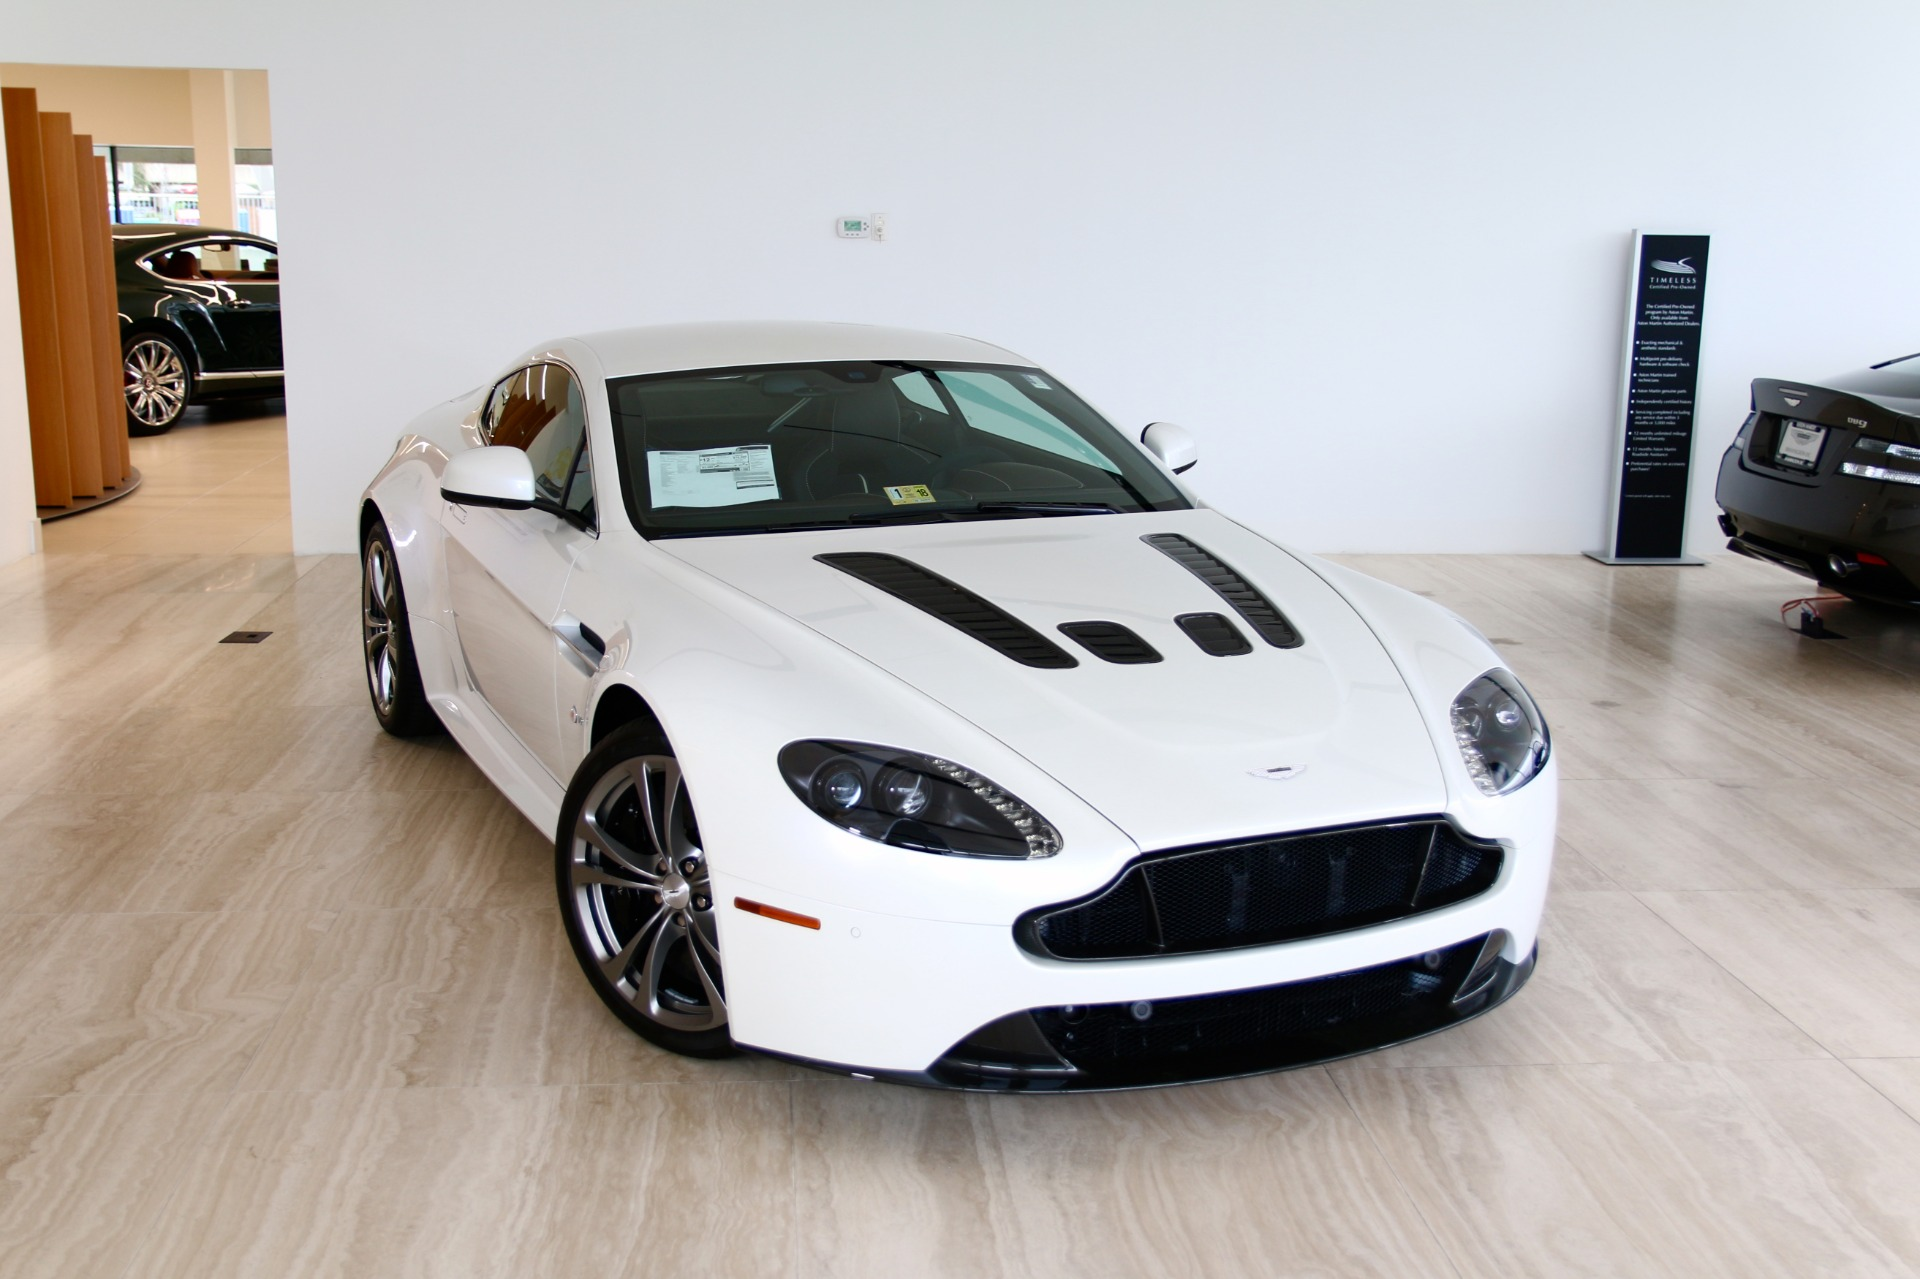 2017 aston martin v12 vantage s stock # 7ns02782 for sale near